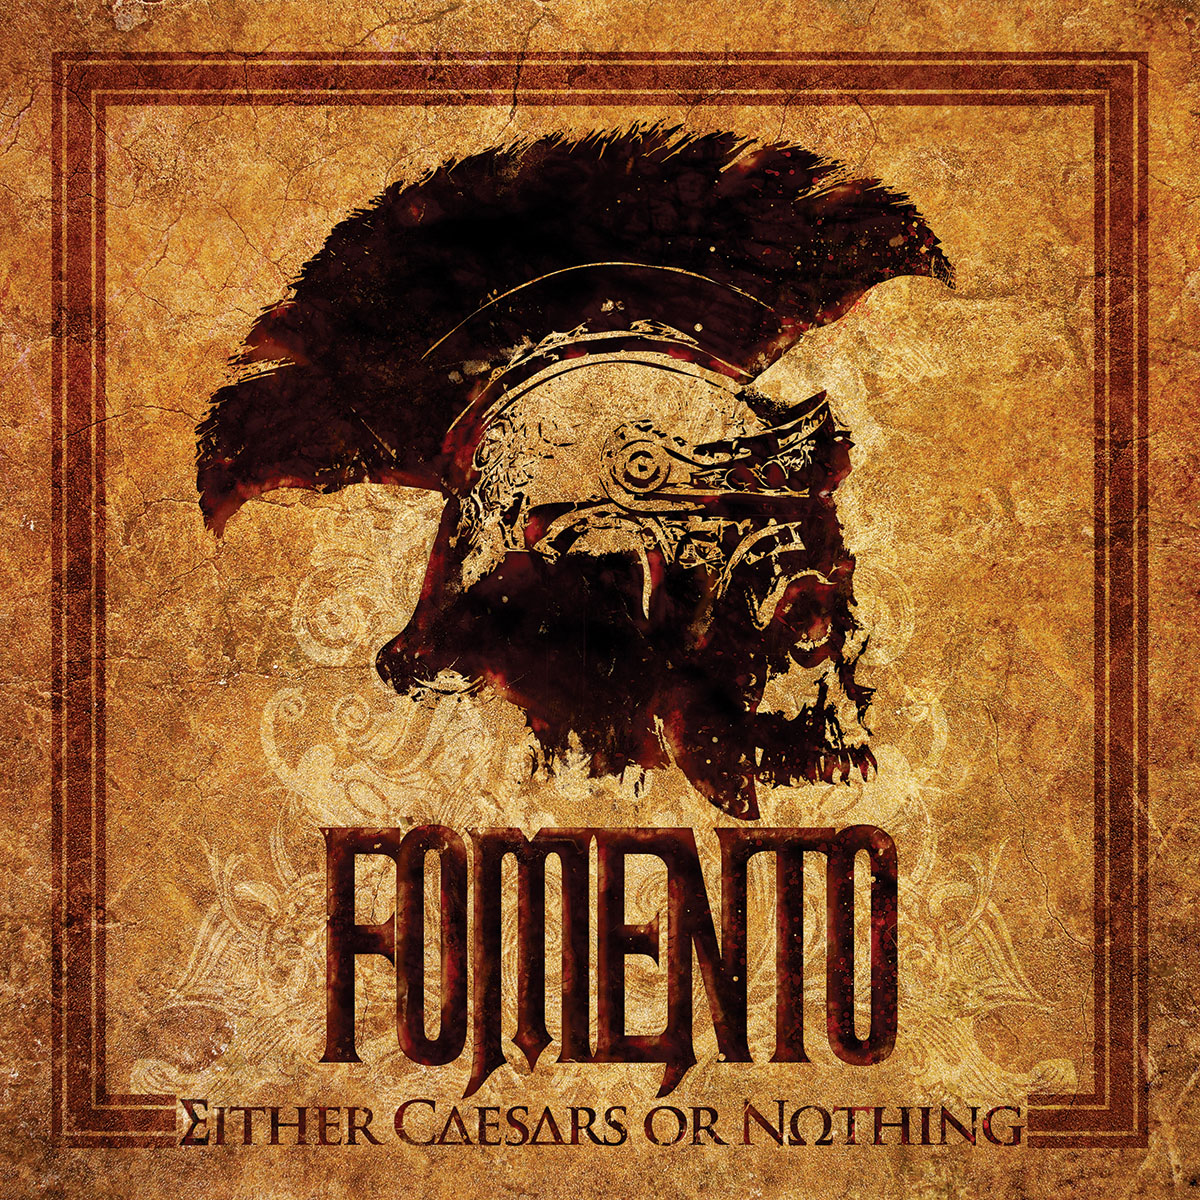 FOMENTO either Caesars or Nothing NERVE Design